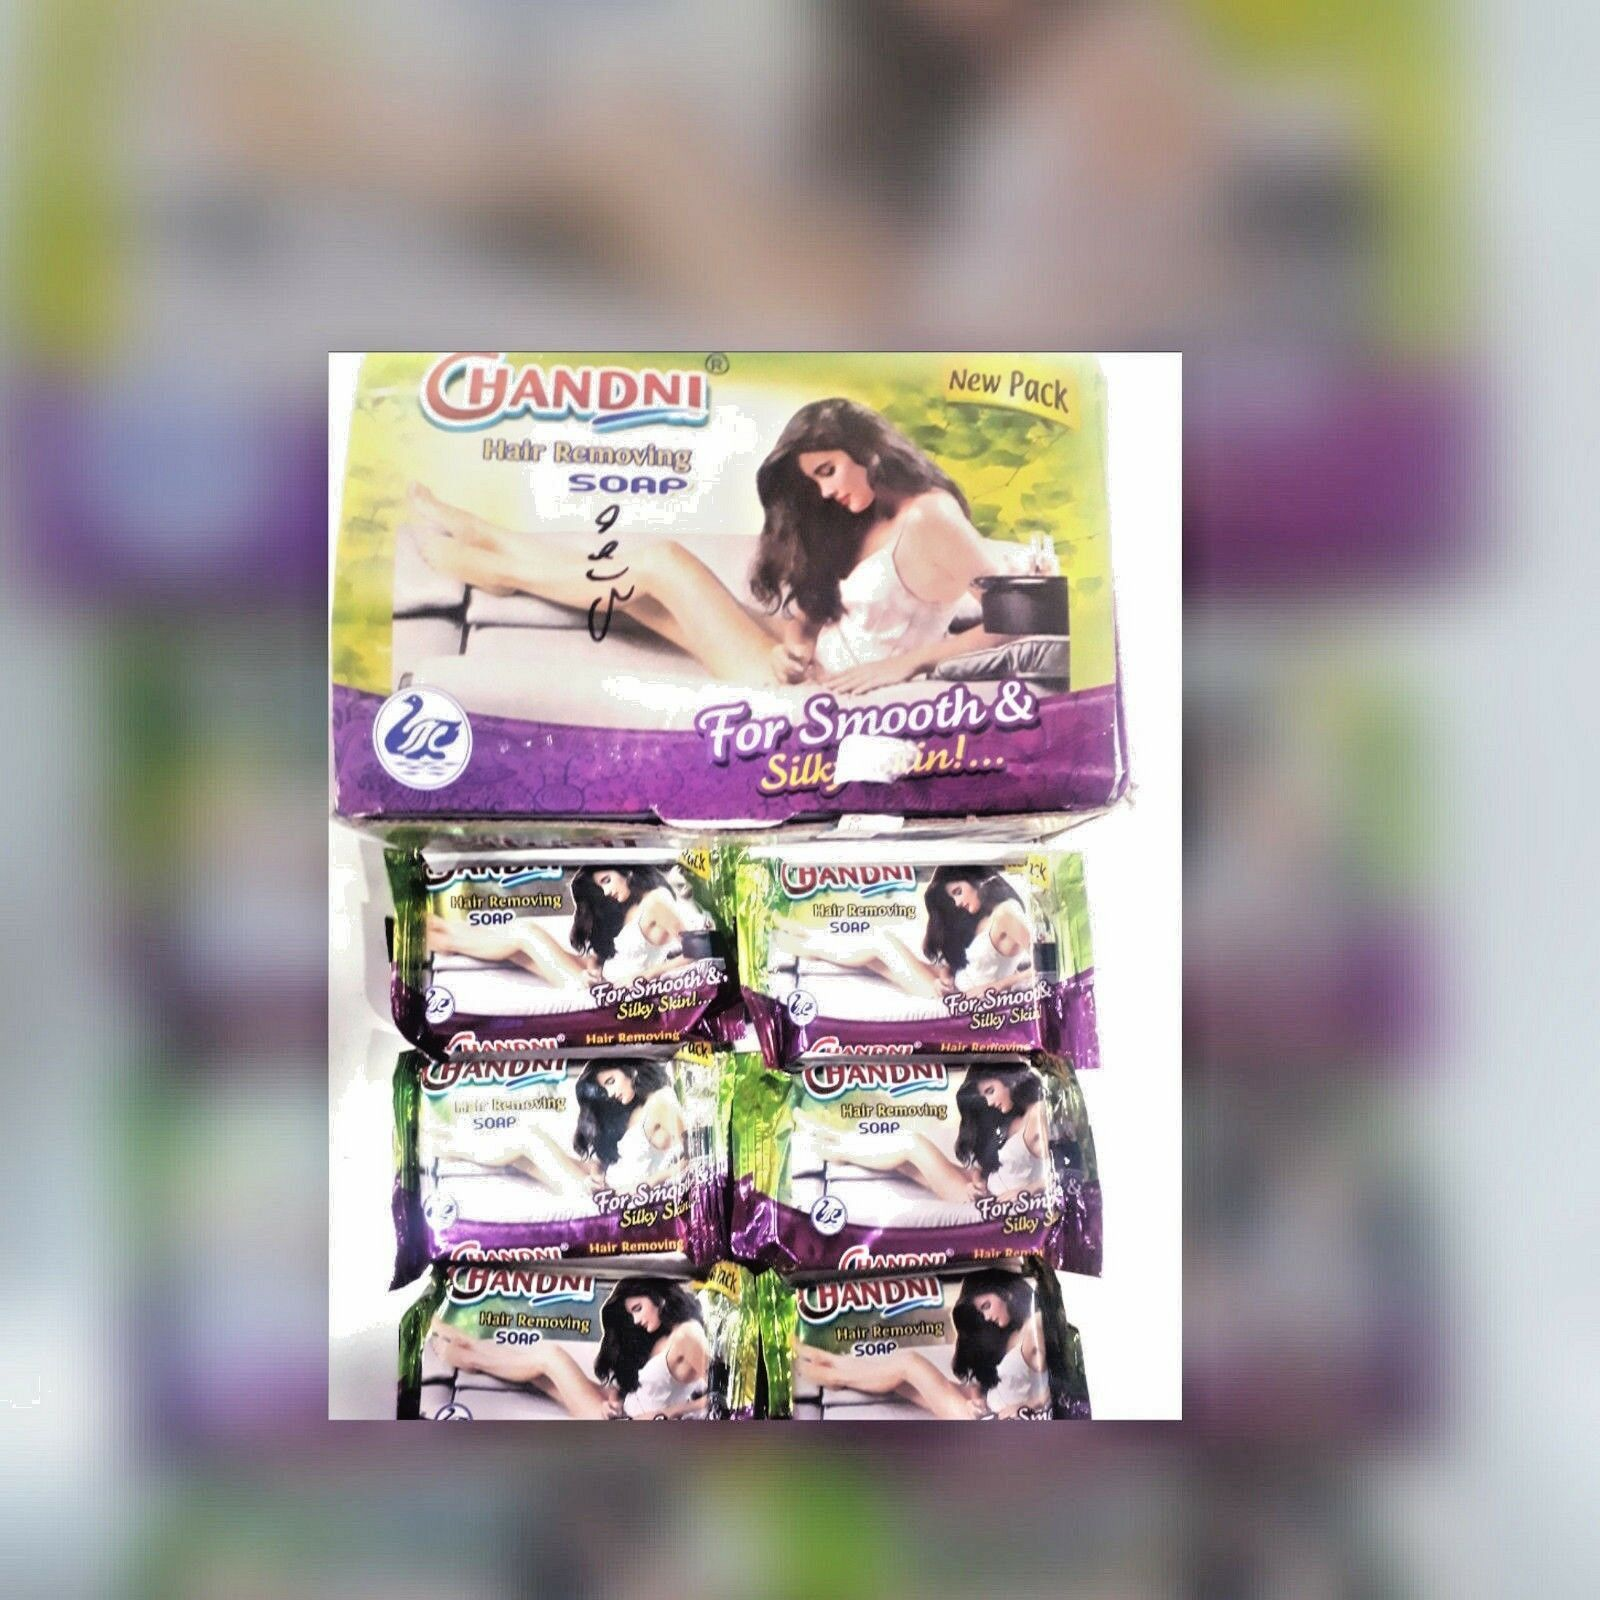 8 piece X CHANDNI HAIR REMOVING SOAP 40 gm FOR SMOOTH & SILKY SKIN *